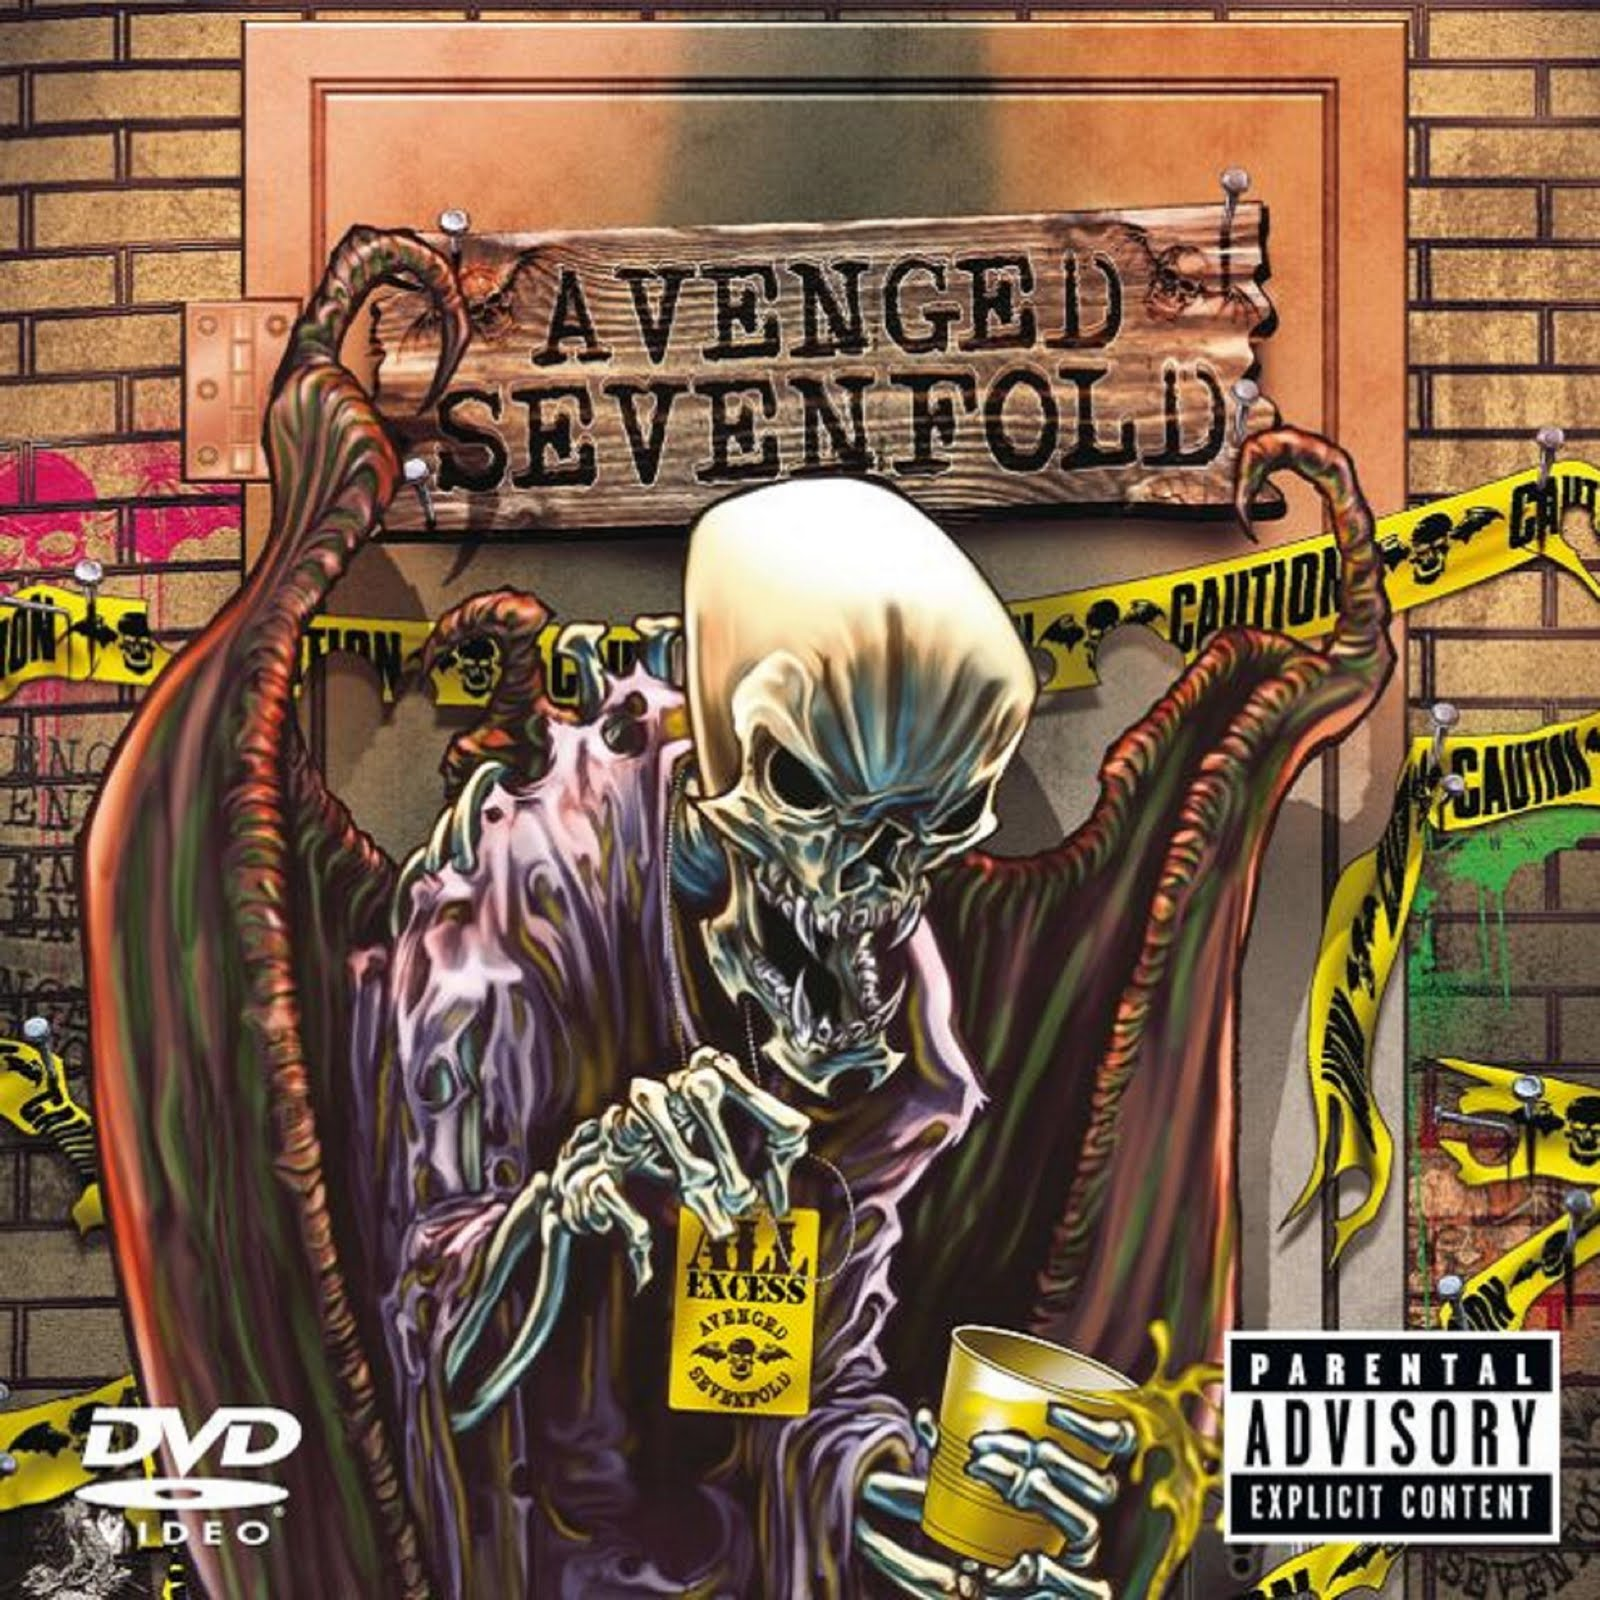 metalcore deathcore avenged sevenfold all excess dvd audio. Black Bedroom Furniture Sets. Home Design Ideas